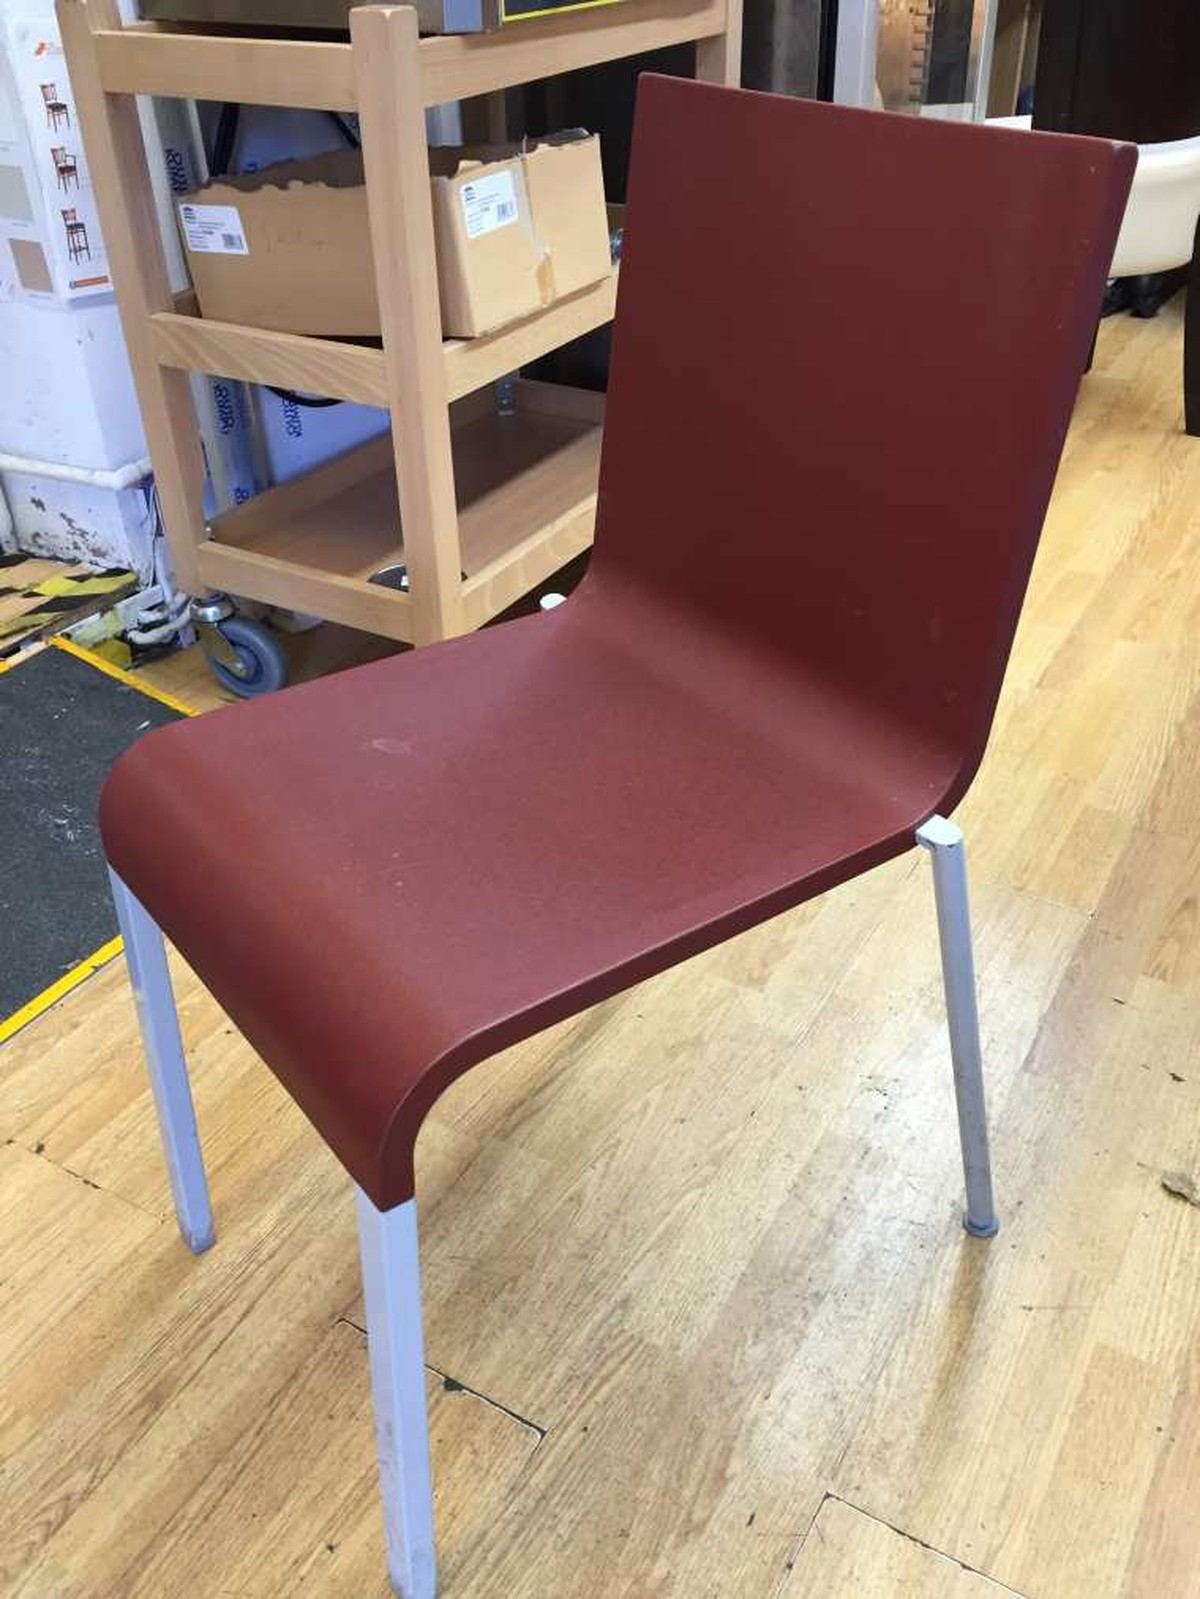 Secondhand Chairs and Tables Stacking Chairs – Vitra 03 Chair